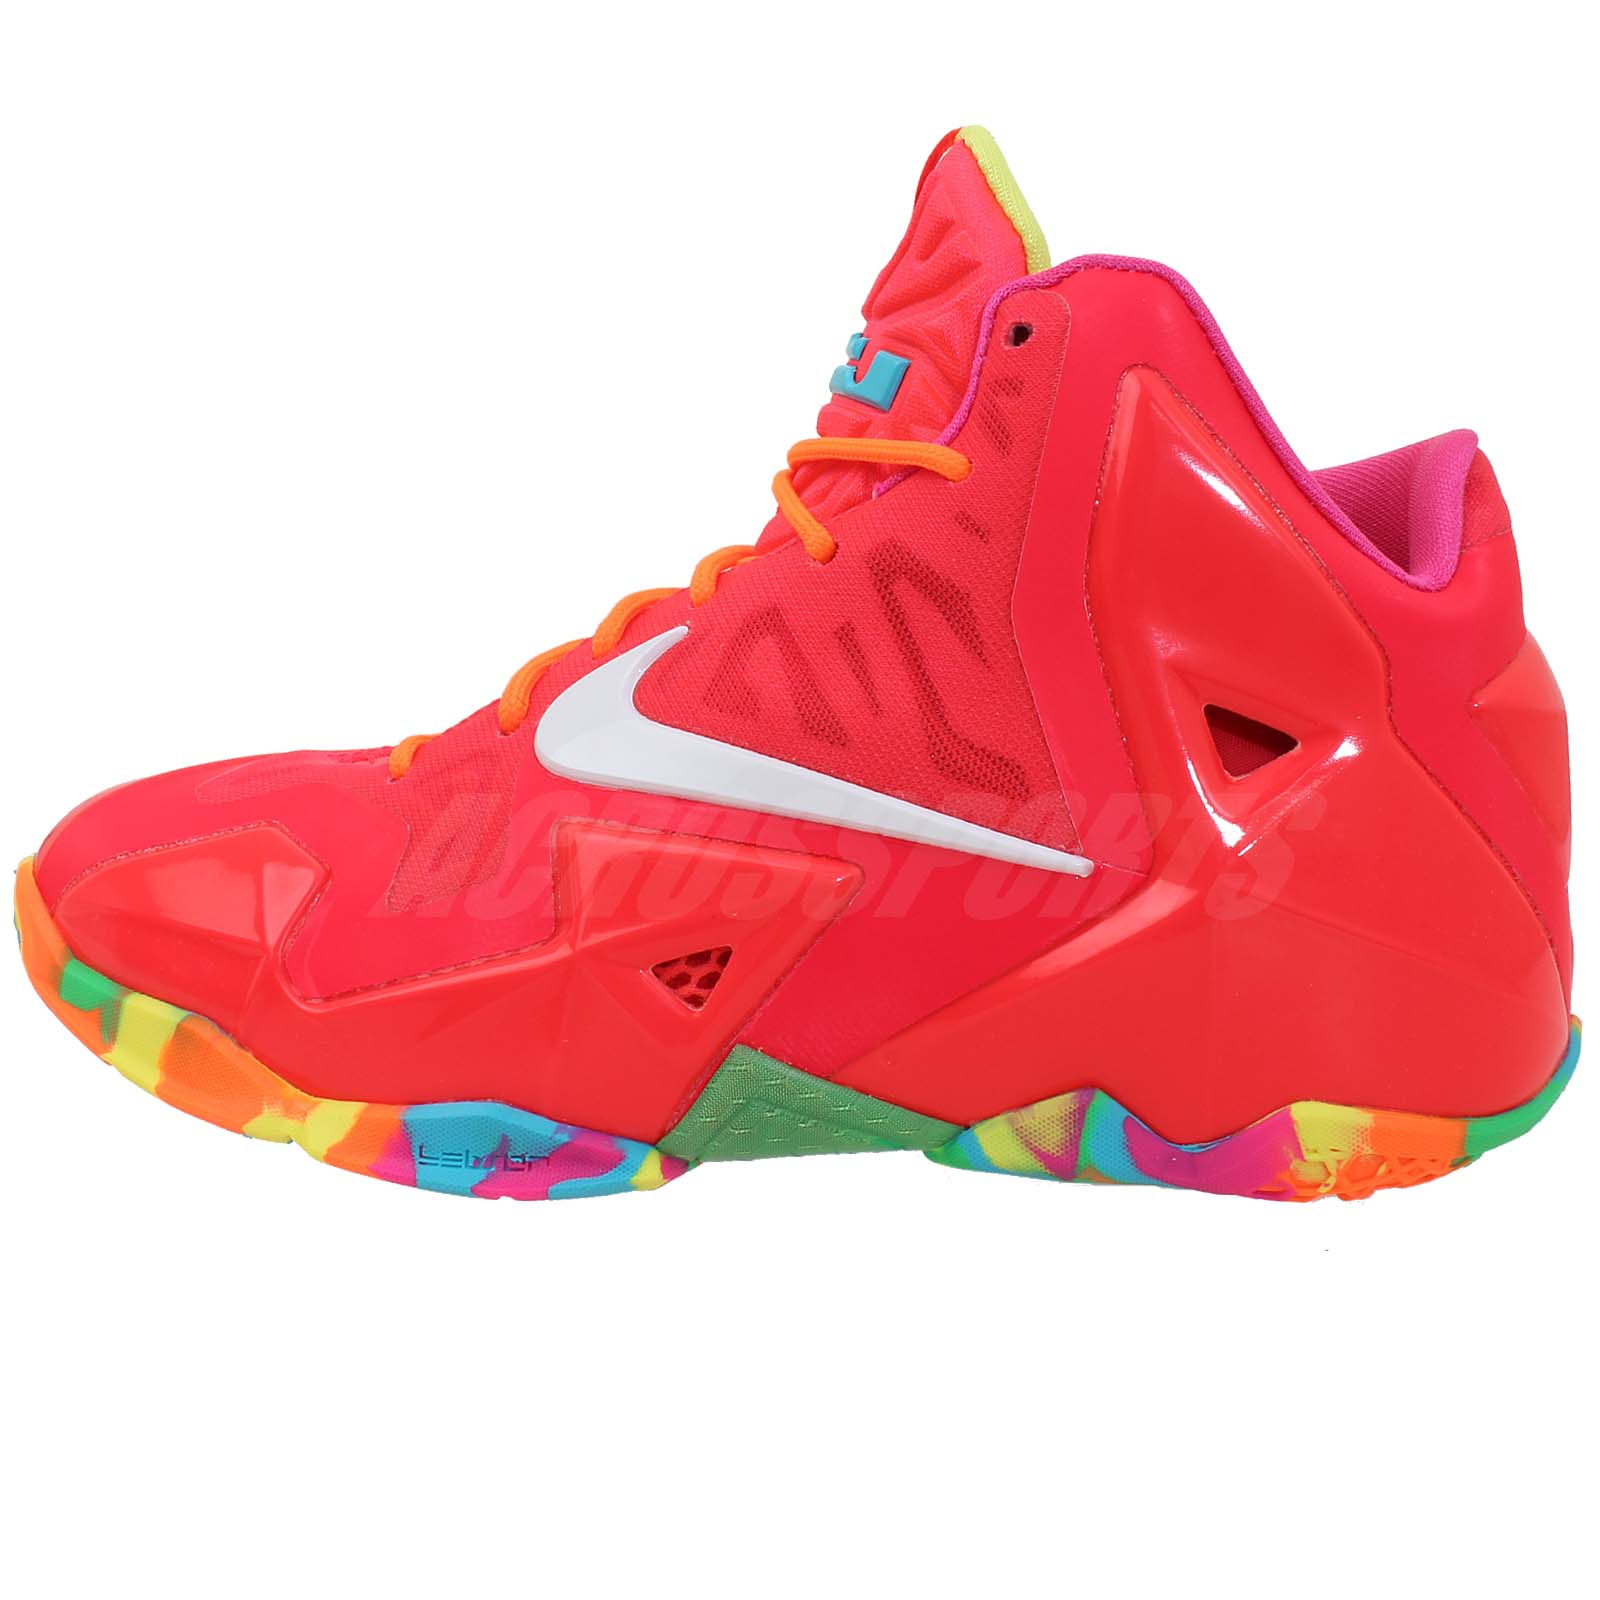 Details about Nike Lebron XI GS 11 Fruity Pebbles Pink 2014 Boys Girls ...